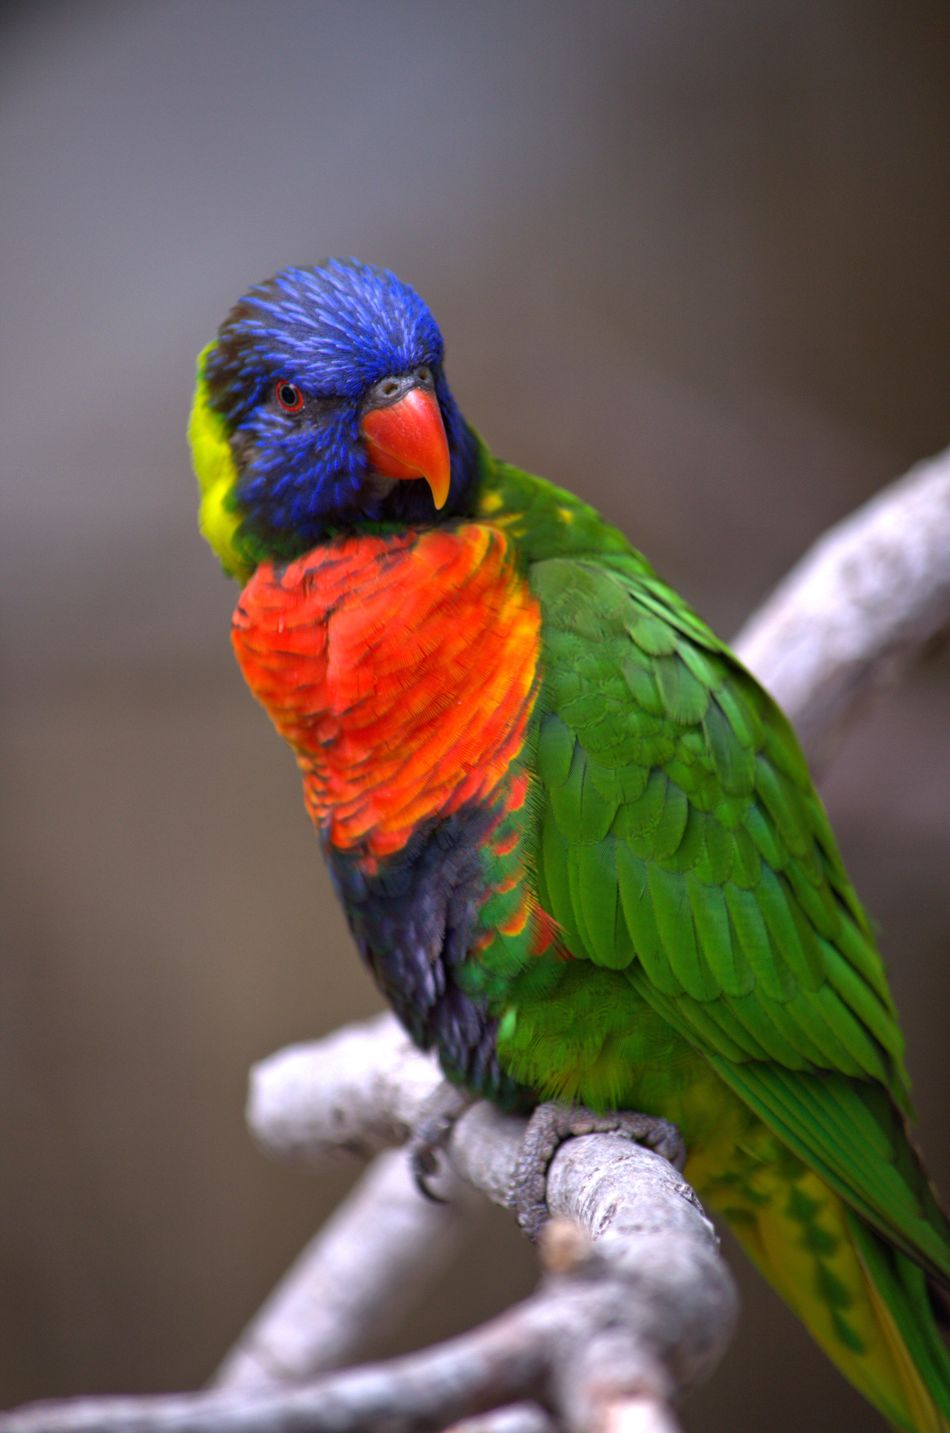 One Animal Bird Rainbow Lorikeet Multi Colored Animal Wildlife Parrot Perching Nature Outdoors Close-up Focus Object San Antonio, Texas San Antonio Zoo Maximum Closeness Animal